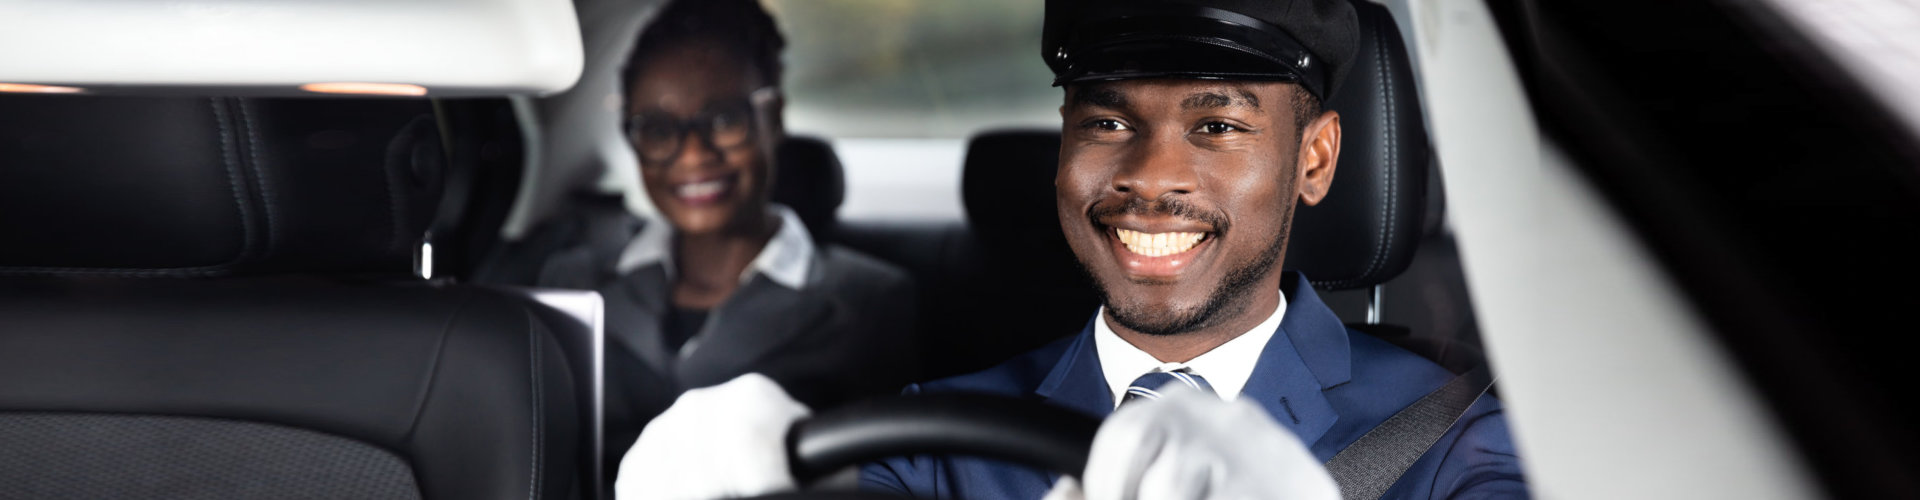 african man and woman smiling inside the car